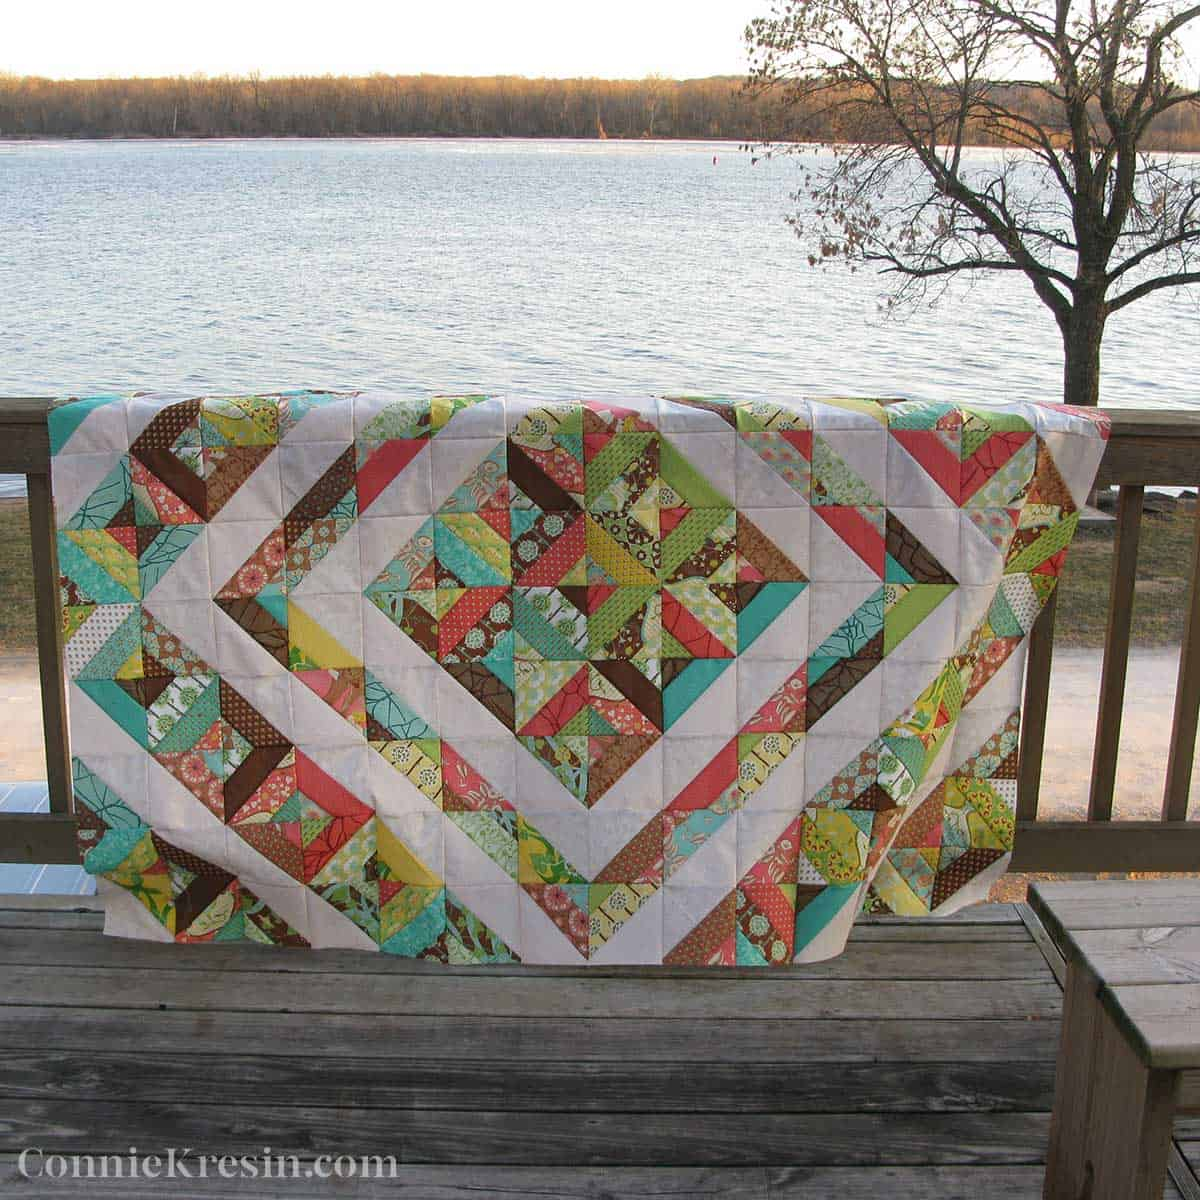 Quilt top on deck rail by the river